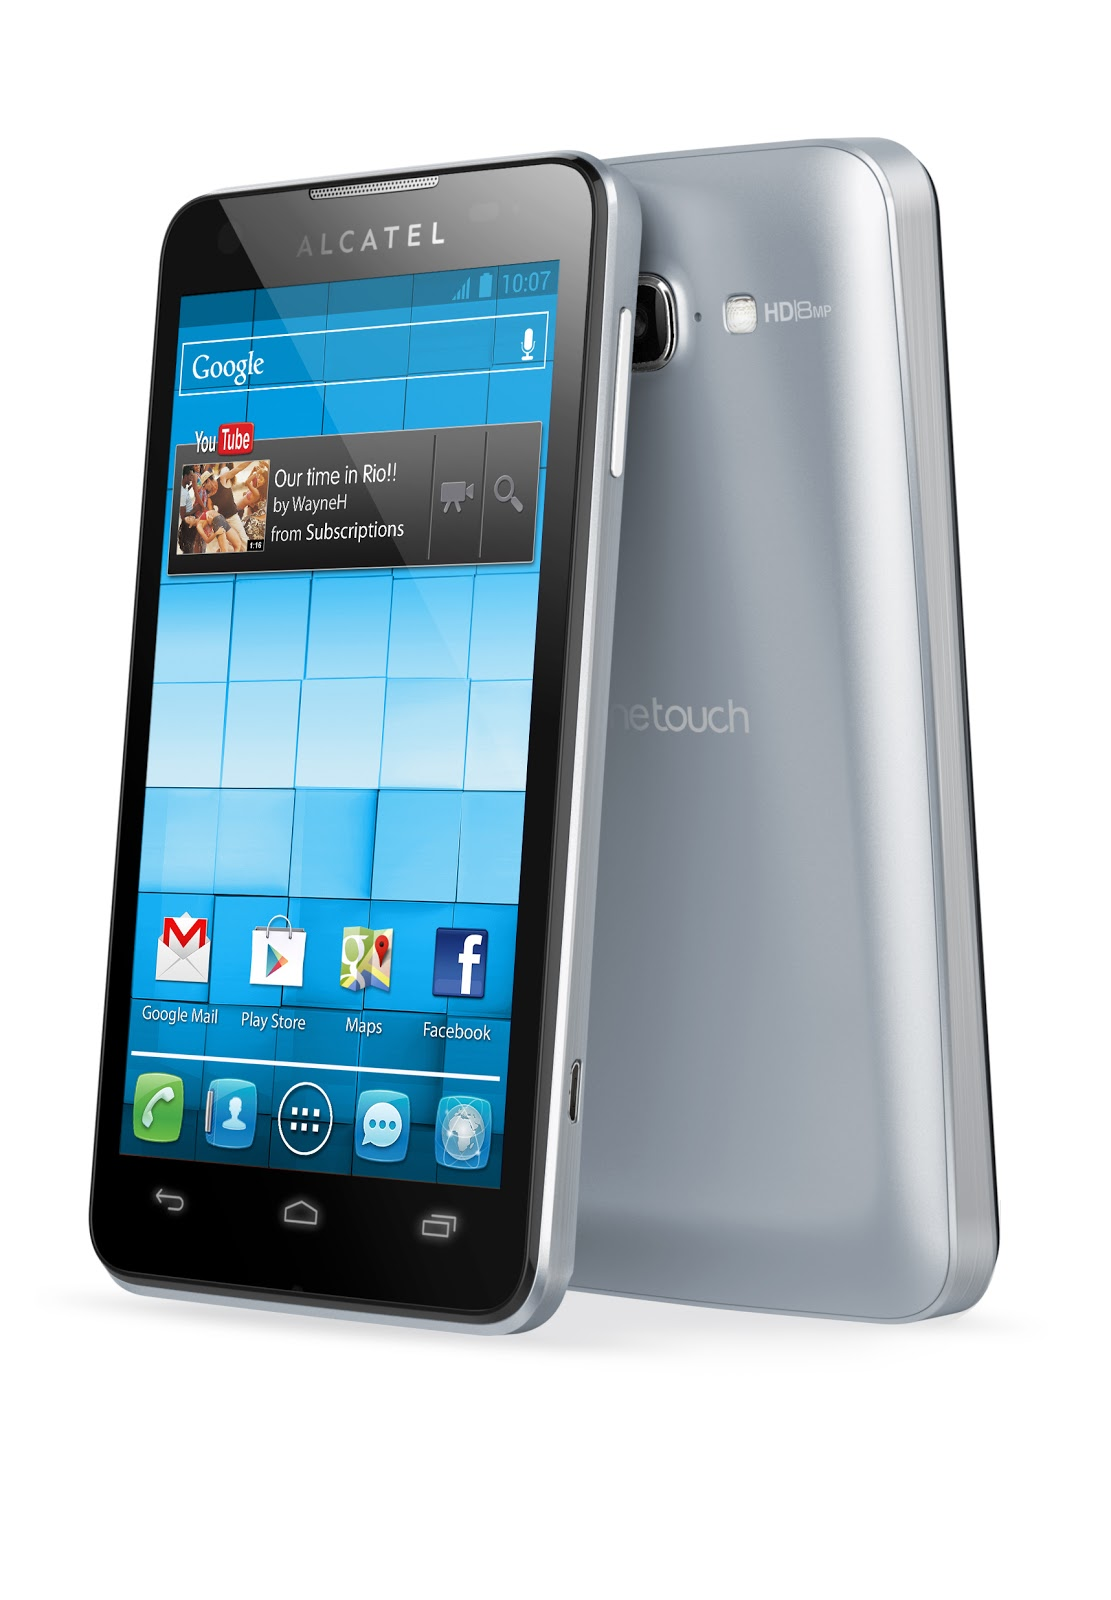 alcatel one touch snap lte pictures latest phone reviews. Black Bedroom Furniture Sets. Home Design Ideas